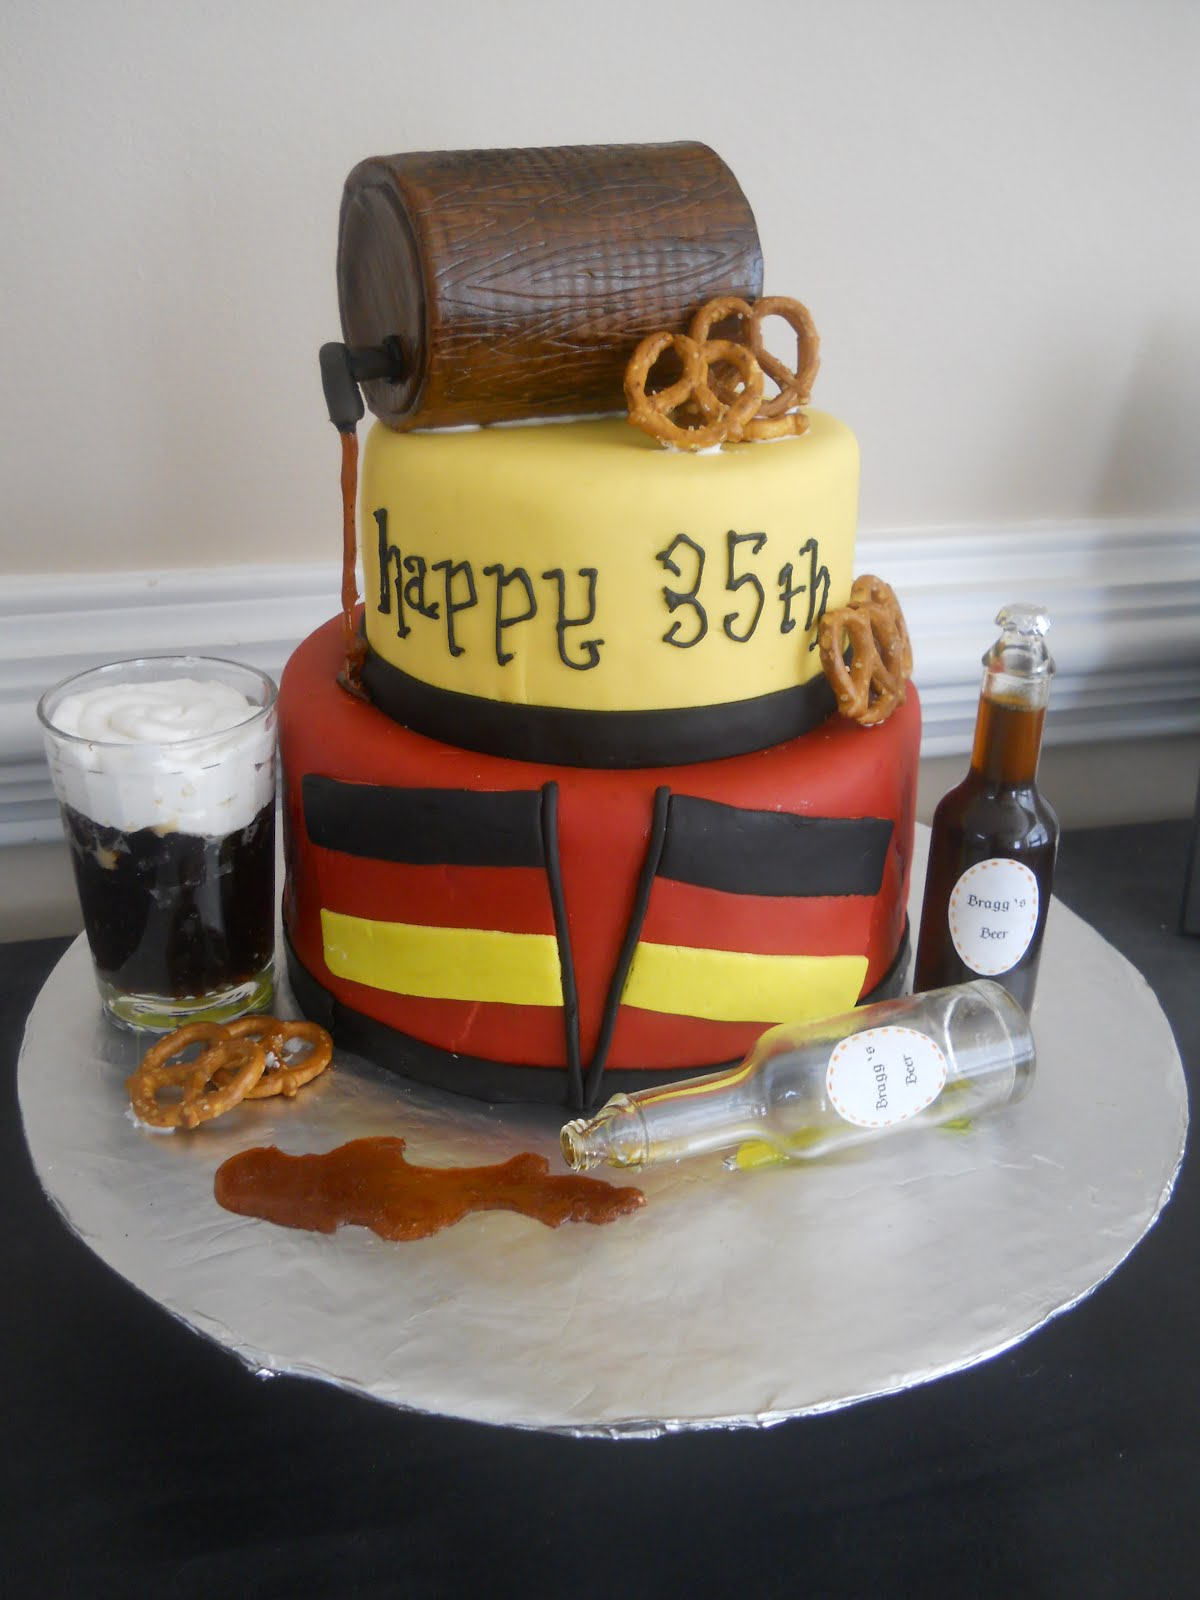 Happy birthday craft beer cake - photo#8